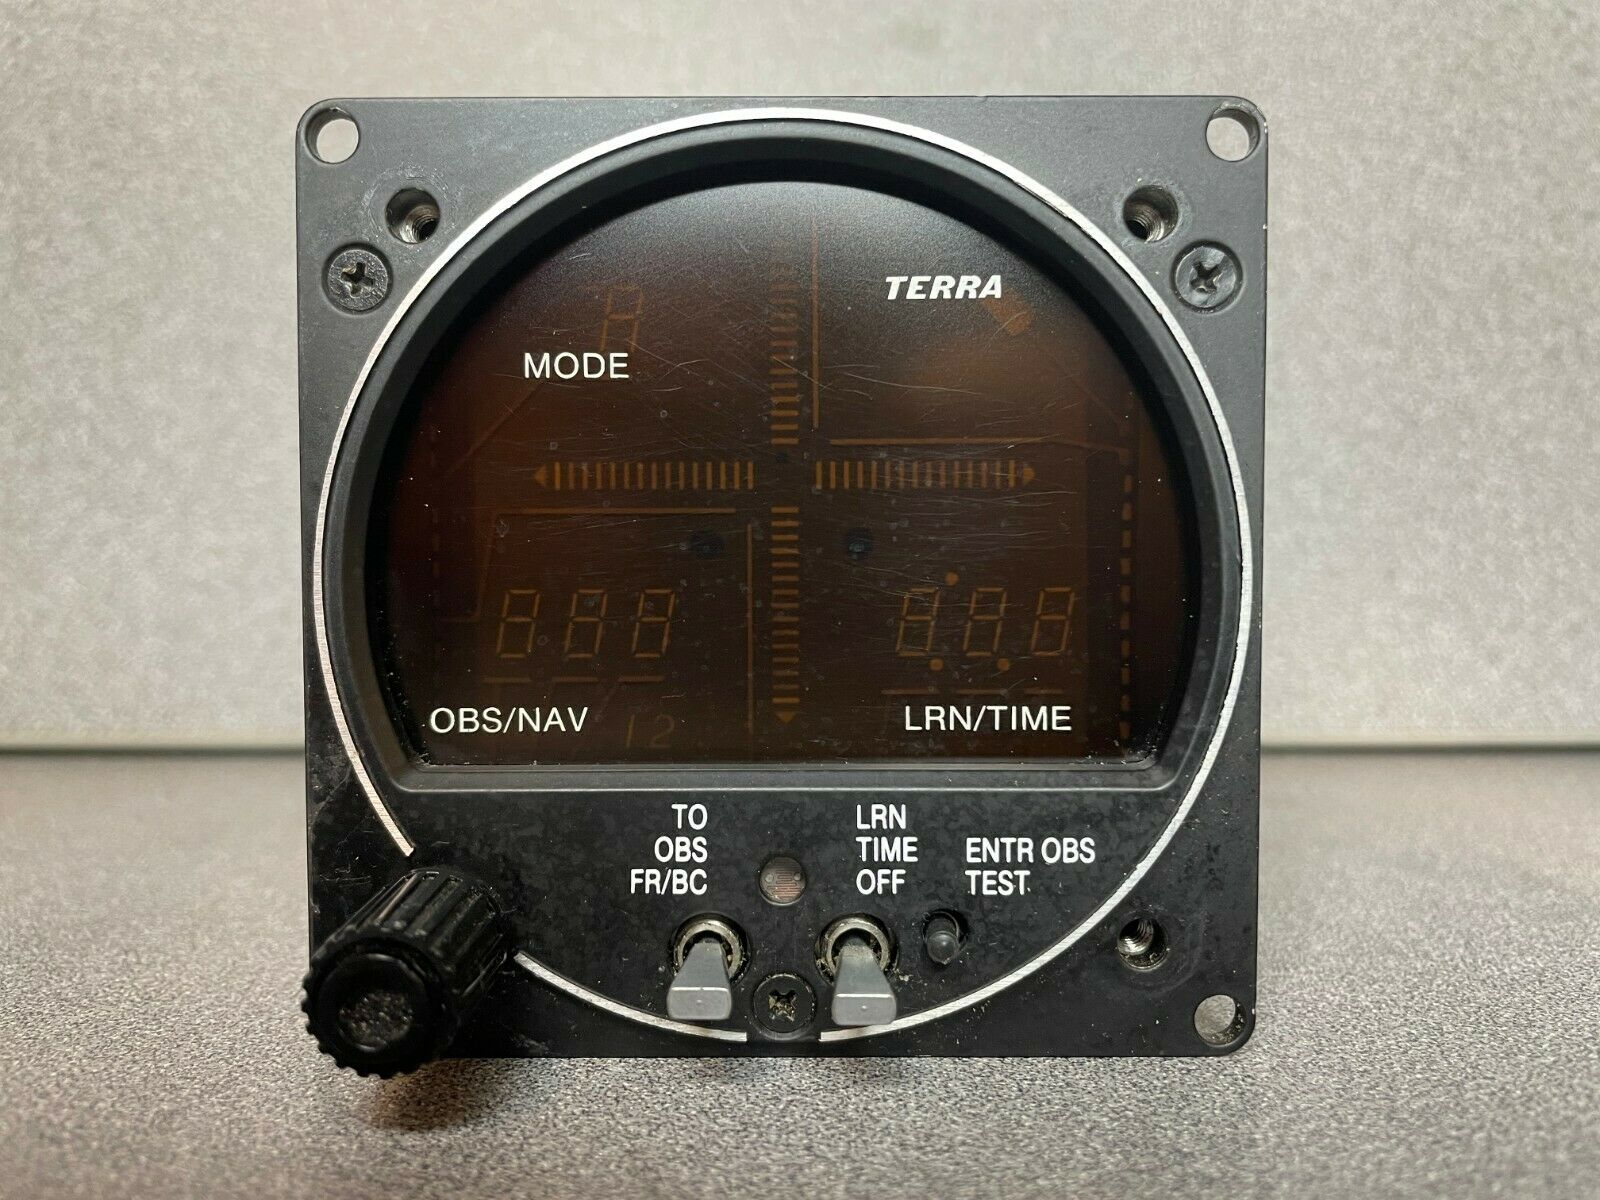 Terra Tri-Nav C P/N: 0900-1100-10 with connector and harness